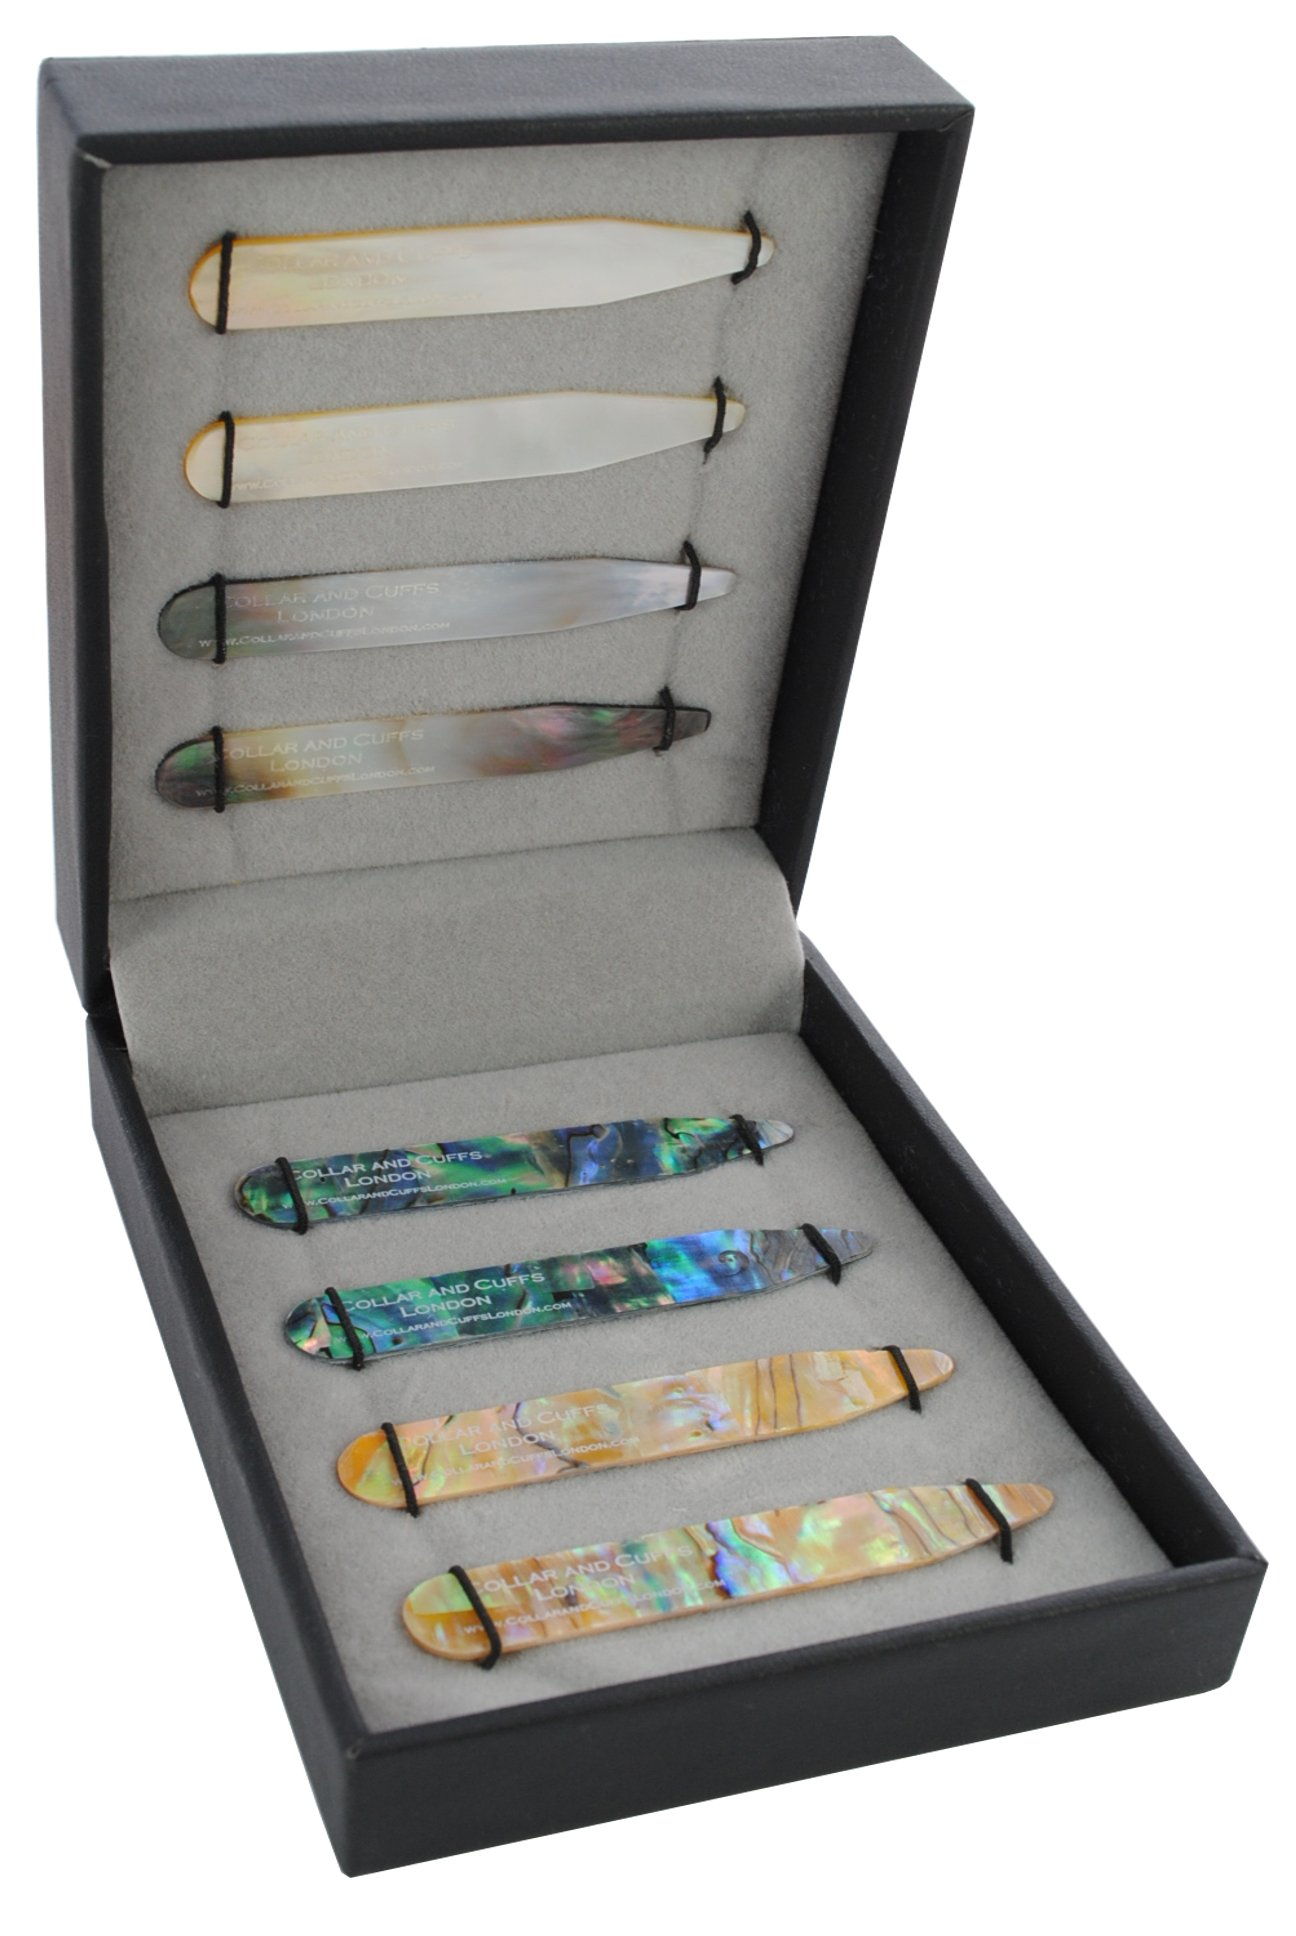 COLLAR AND CUFFS LONDON - 8 Shirt Collar Stiffeners - 4 MOTHER OF PEARL DESIGNS, 2 SIZES - 2.2'' 2.35'' - Green Brown Gold and Black Colours - With Luxury Presentation Gift Box - 4 pairs